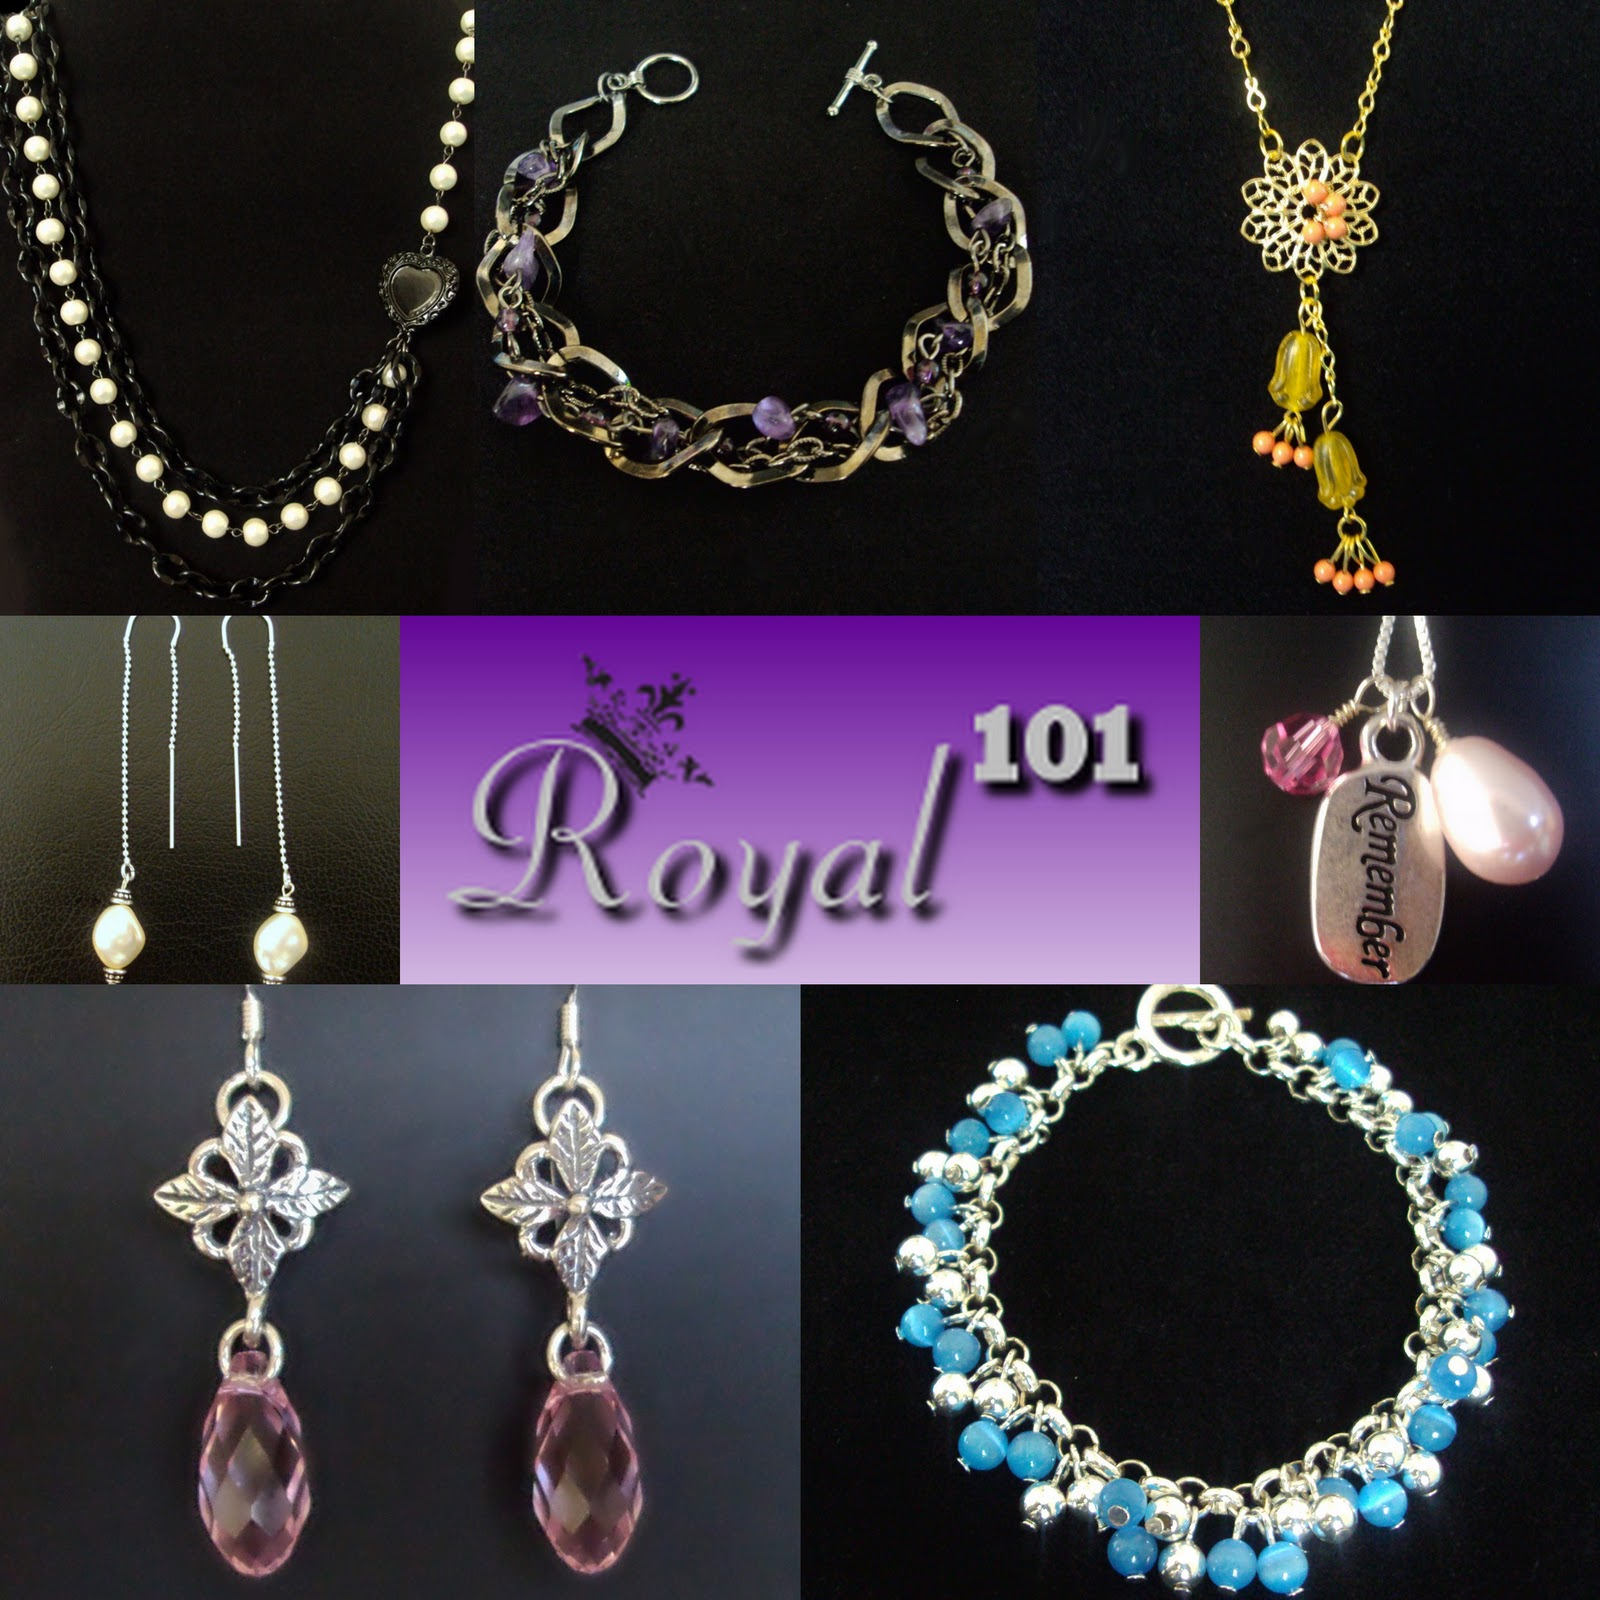 Royal_101_Jewelry